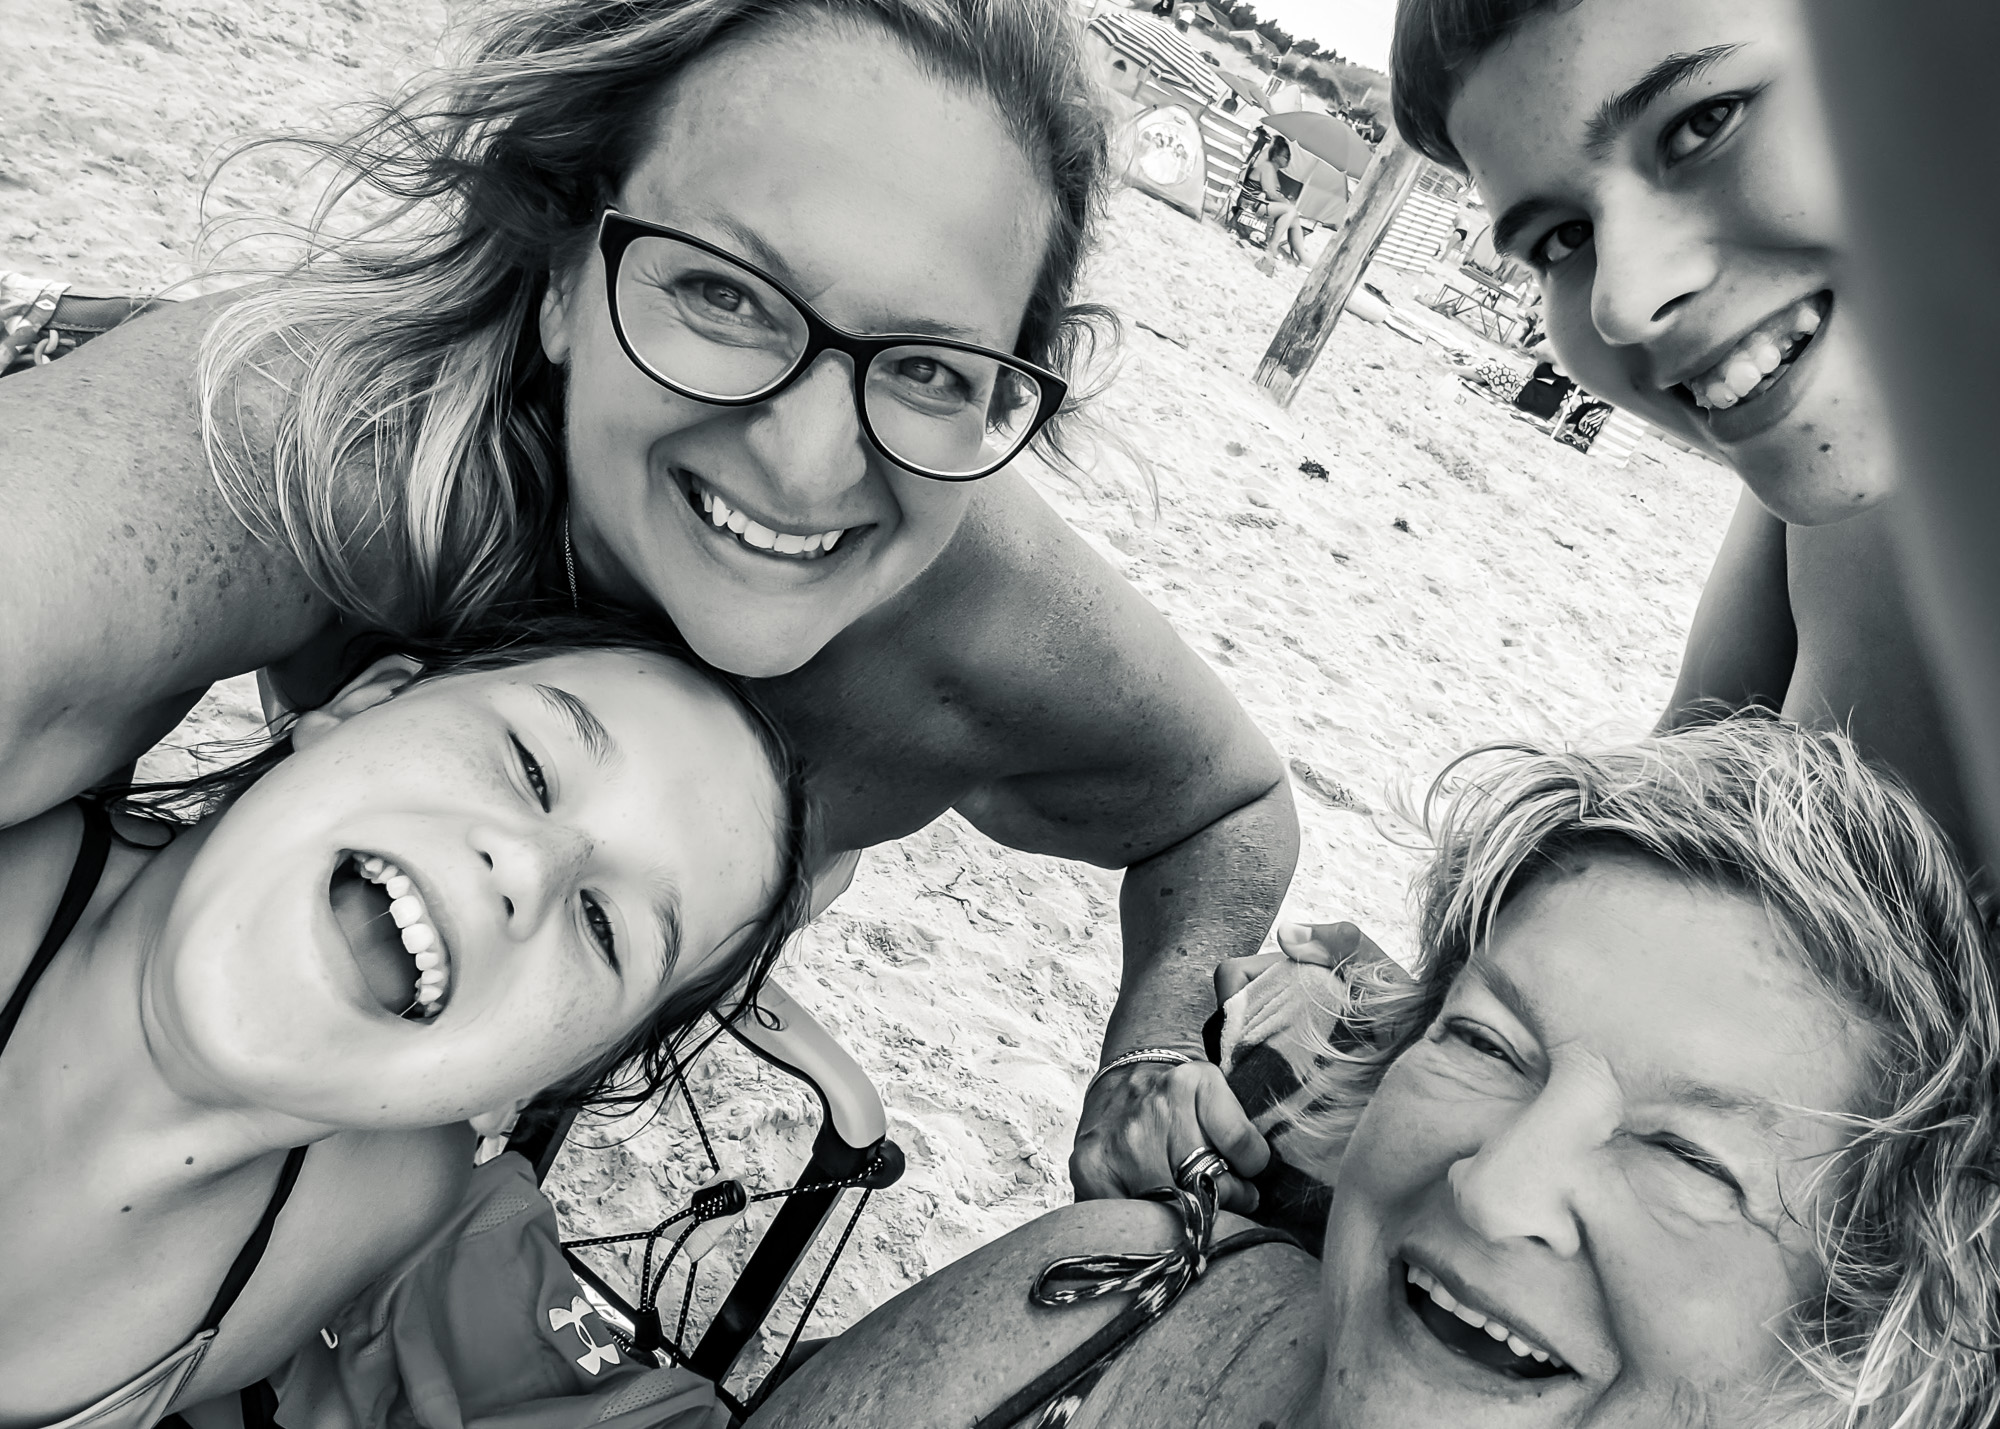 Black and white selfie of Erika enjoying life with family at the beach